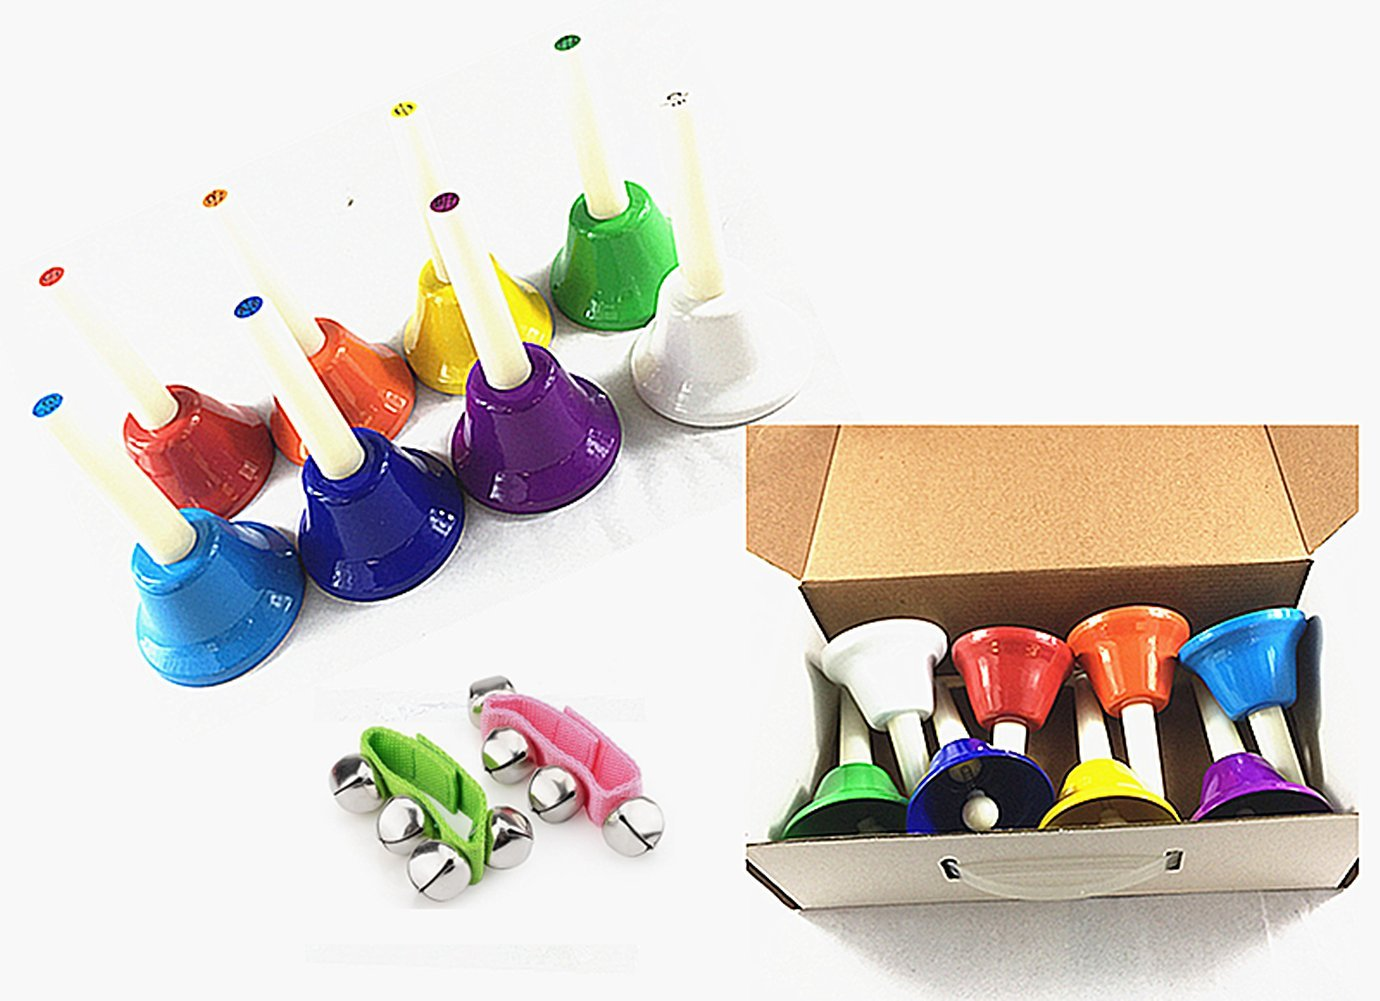 PiXiu-XP Hand Bells Set, 8 Note Diatonic Metal Bells, Musical Learning at an Early Age, Musical Toy Percussion Instrument, Musical Gifts for Kids.(A pair of wrist bells)